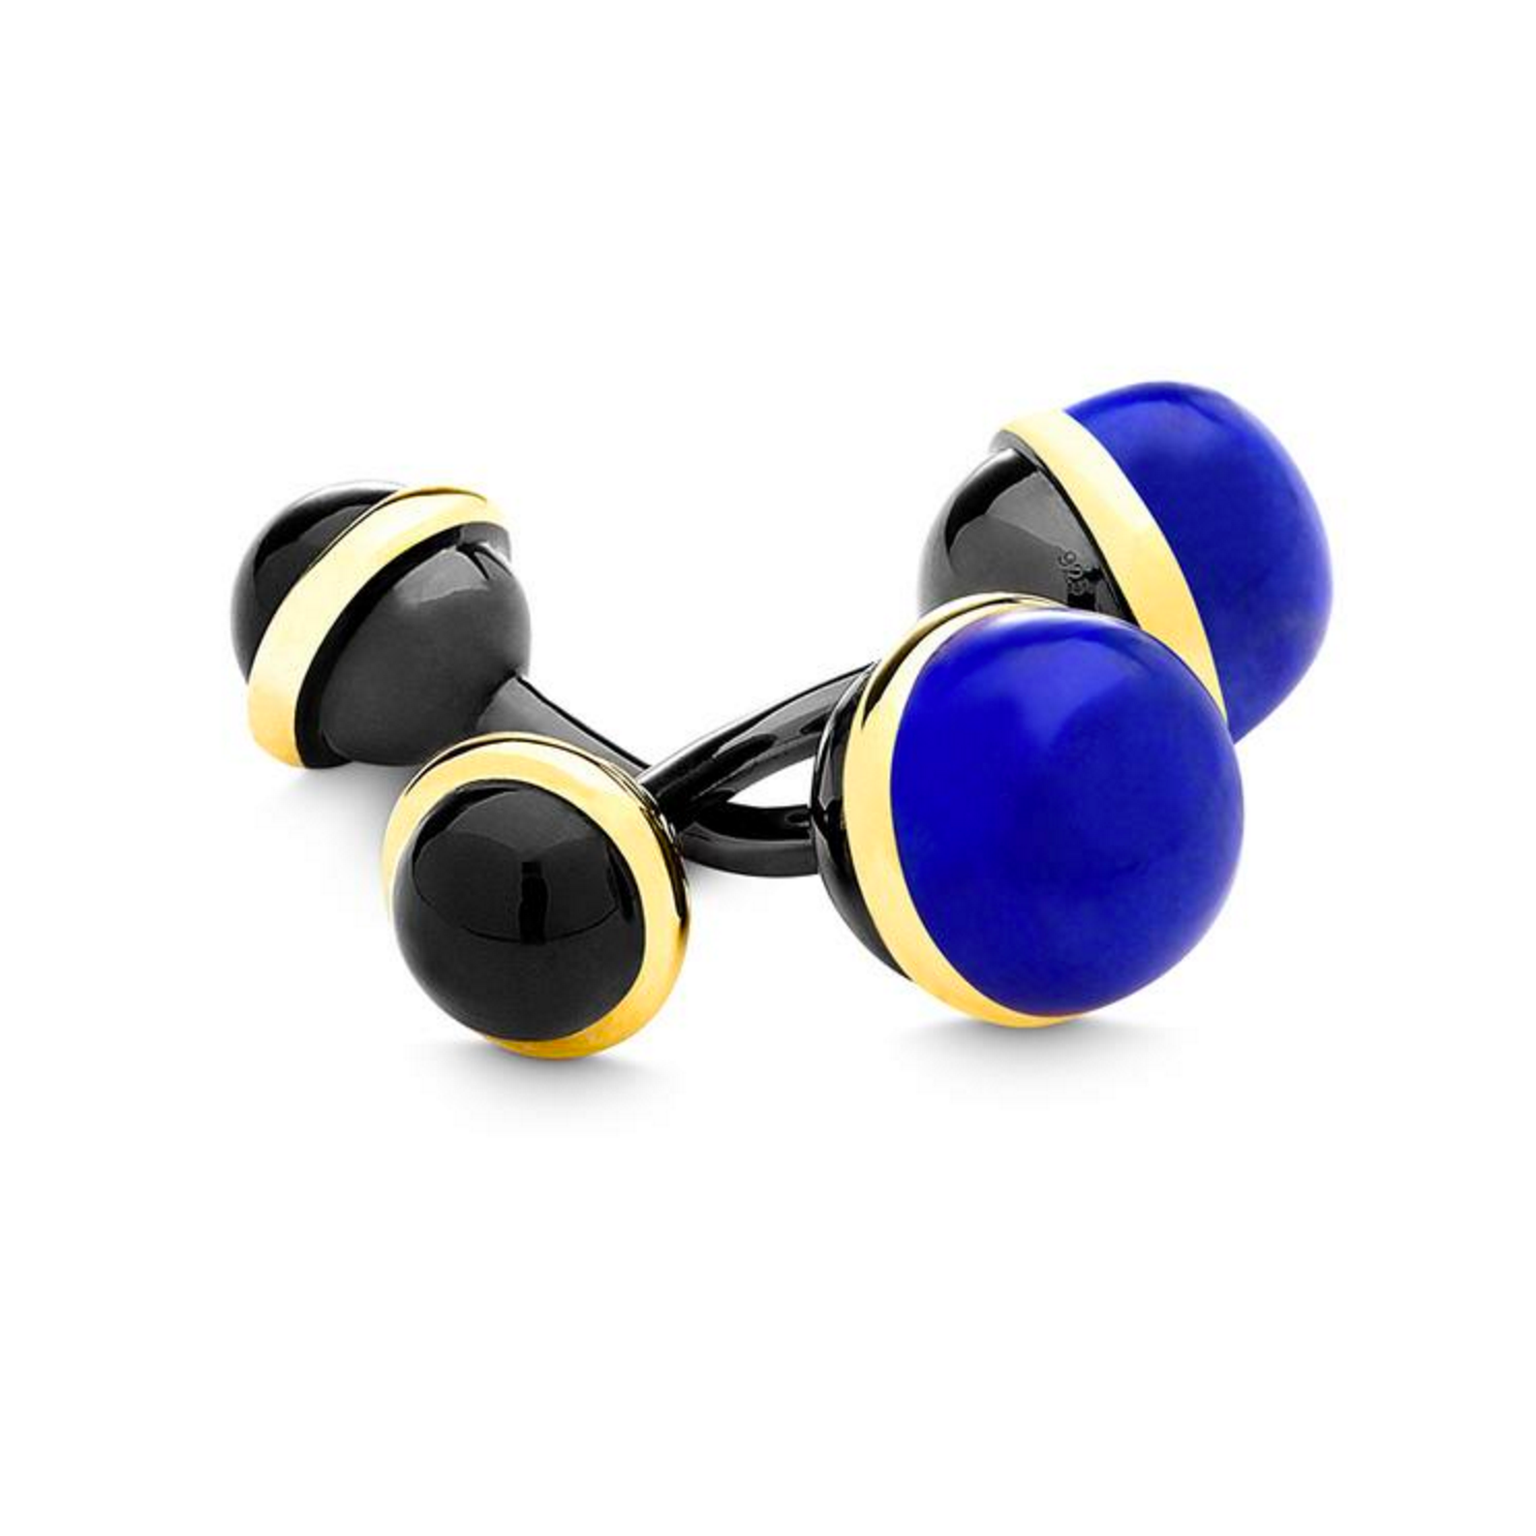 Syna lapis lazuli and black onyx cufflinks